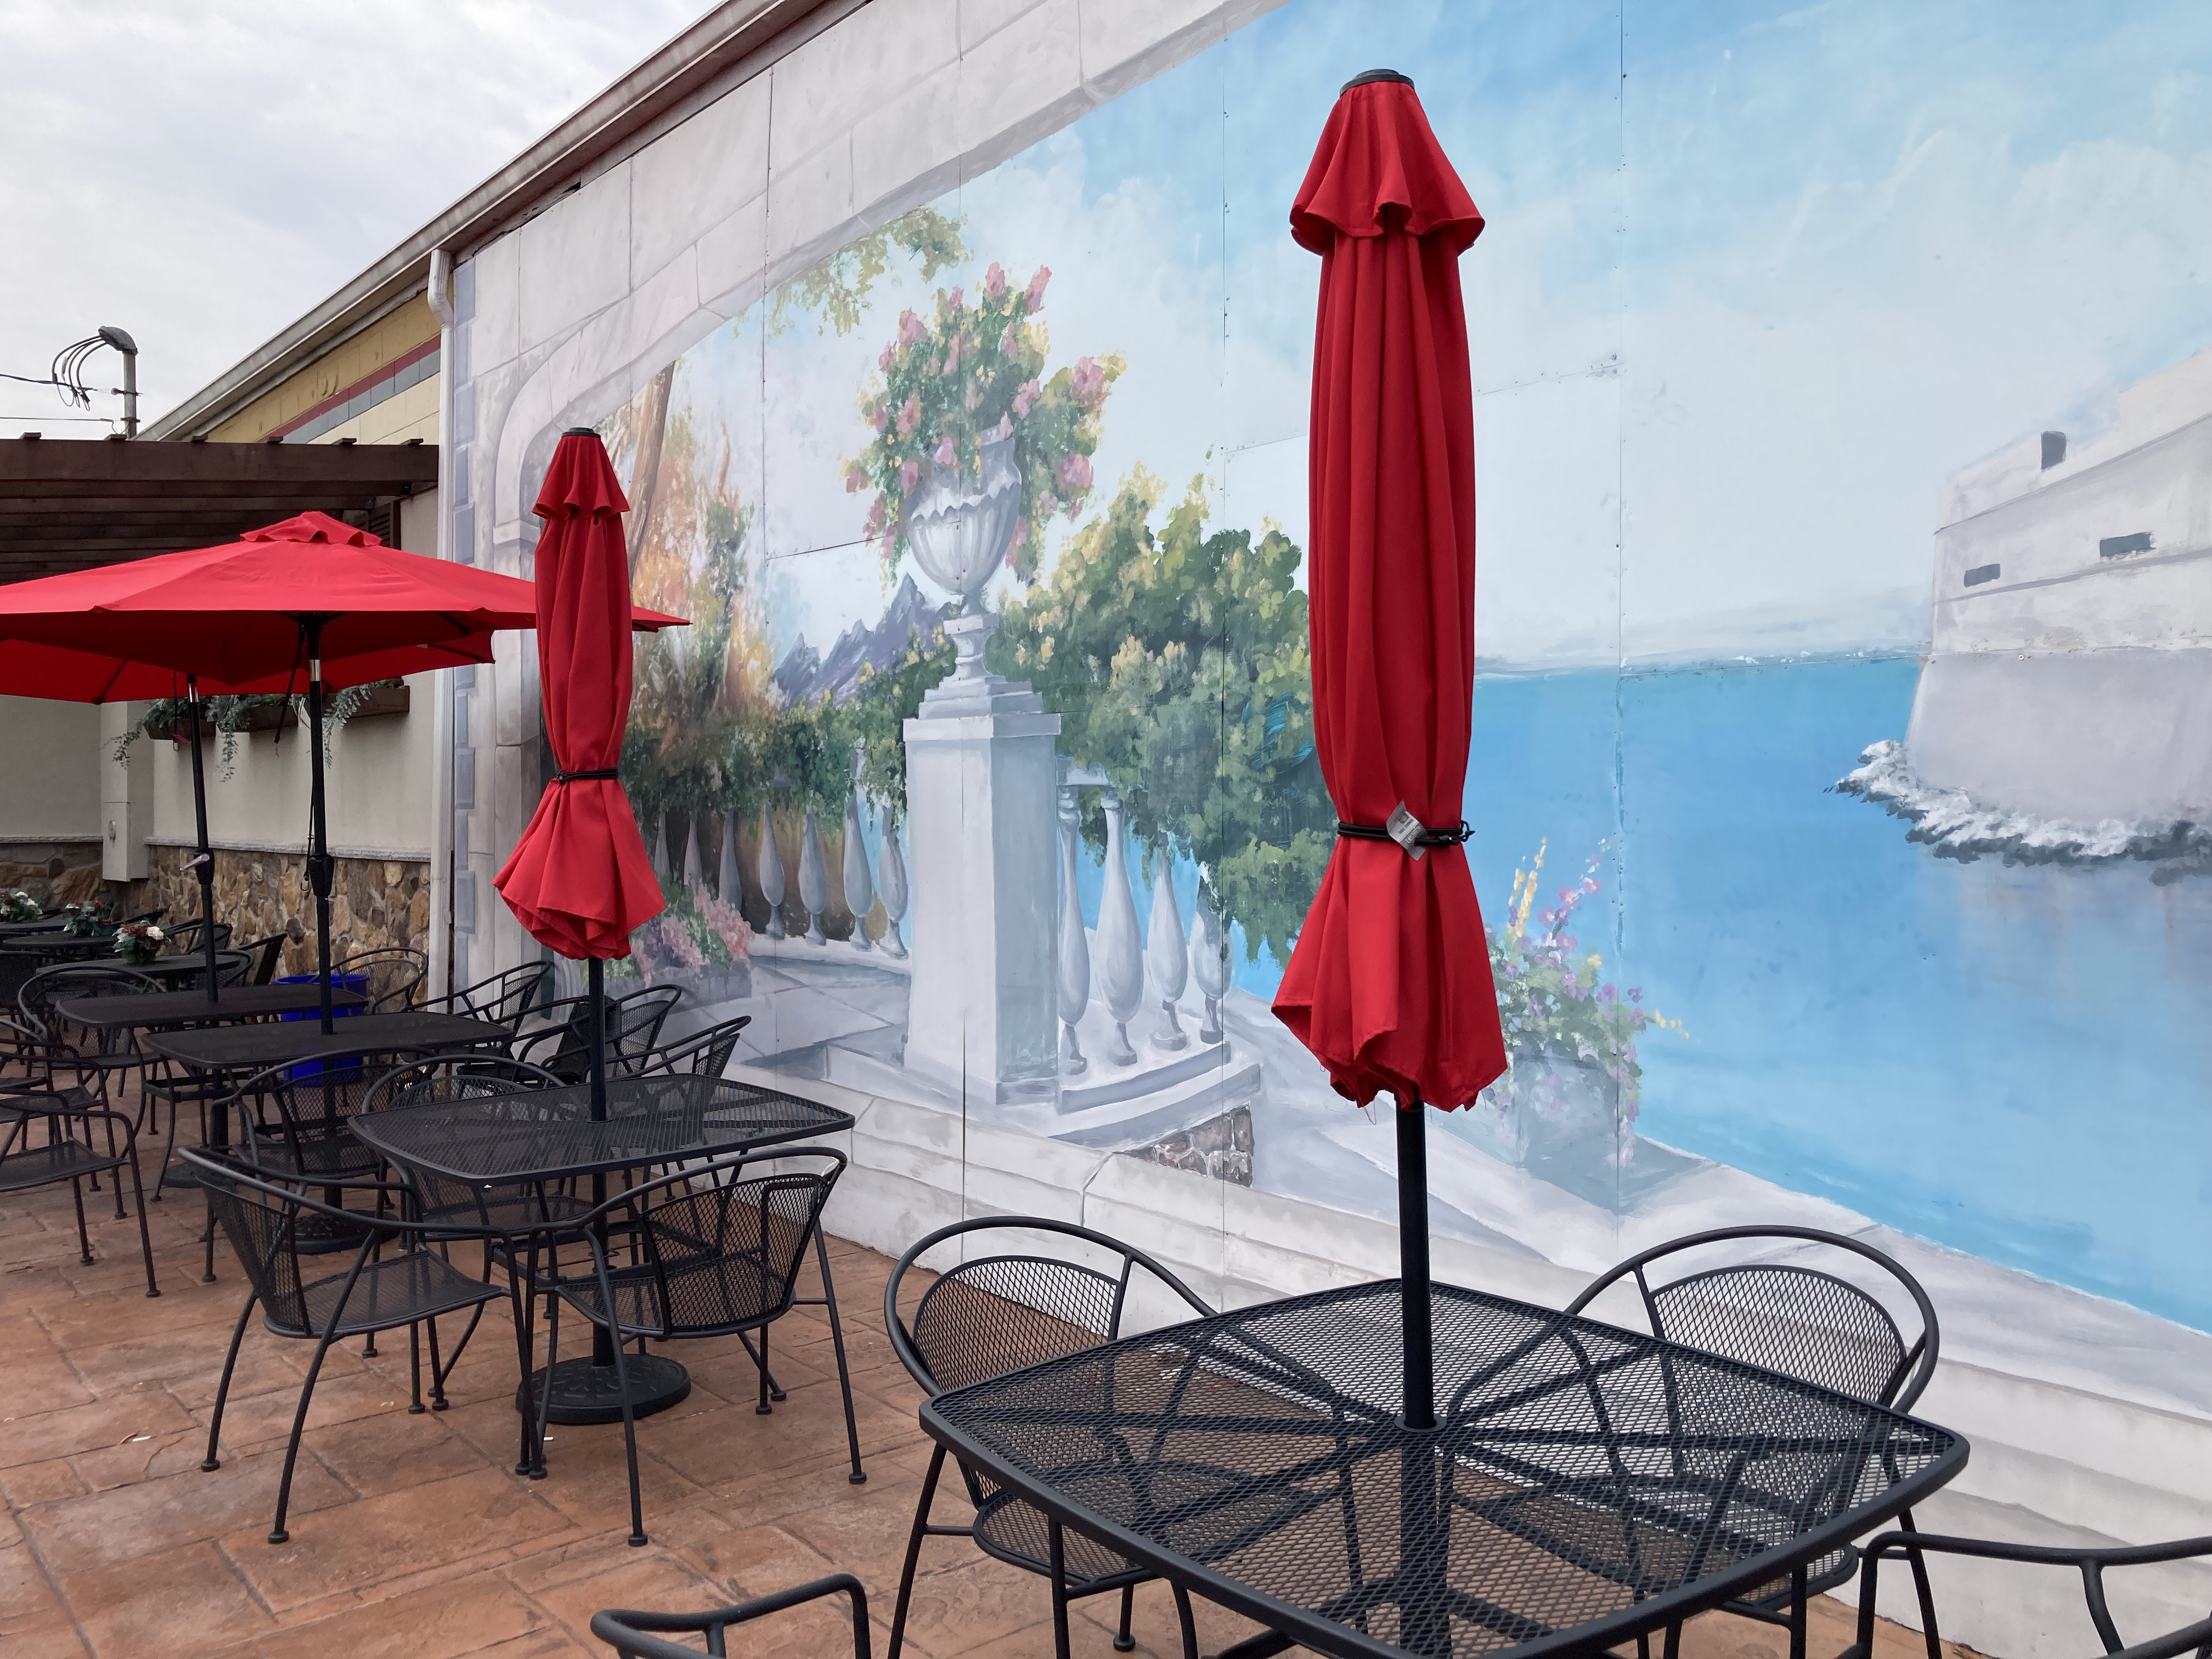 Outdoor patio, with a wall mural on outside of building of a view of the Adriatic Sea.